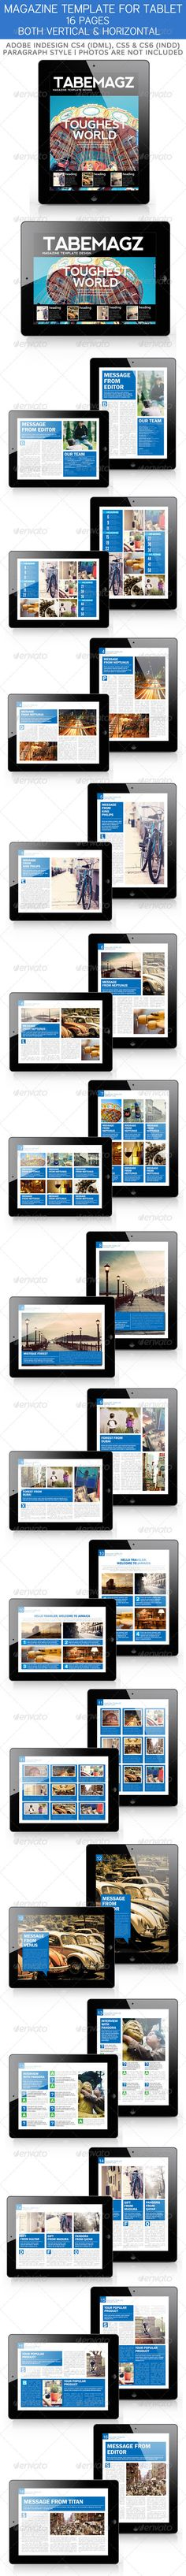 Tabemagz Magazine Template for Tablet